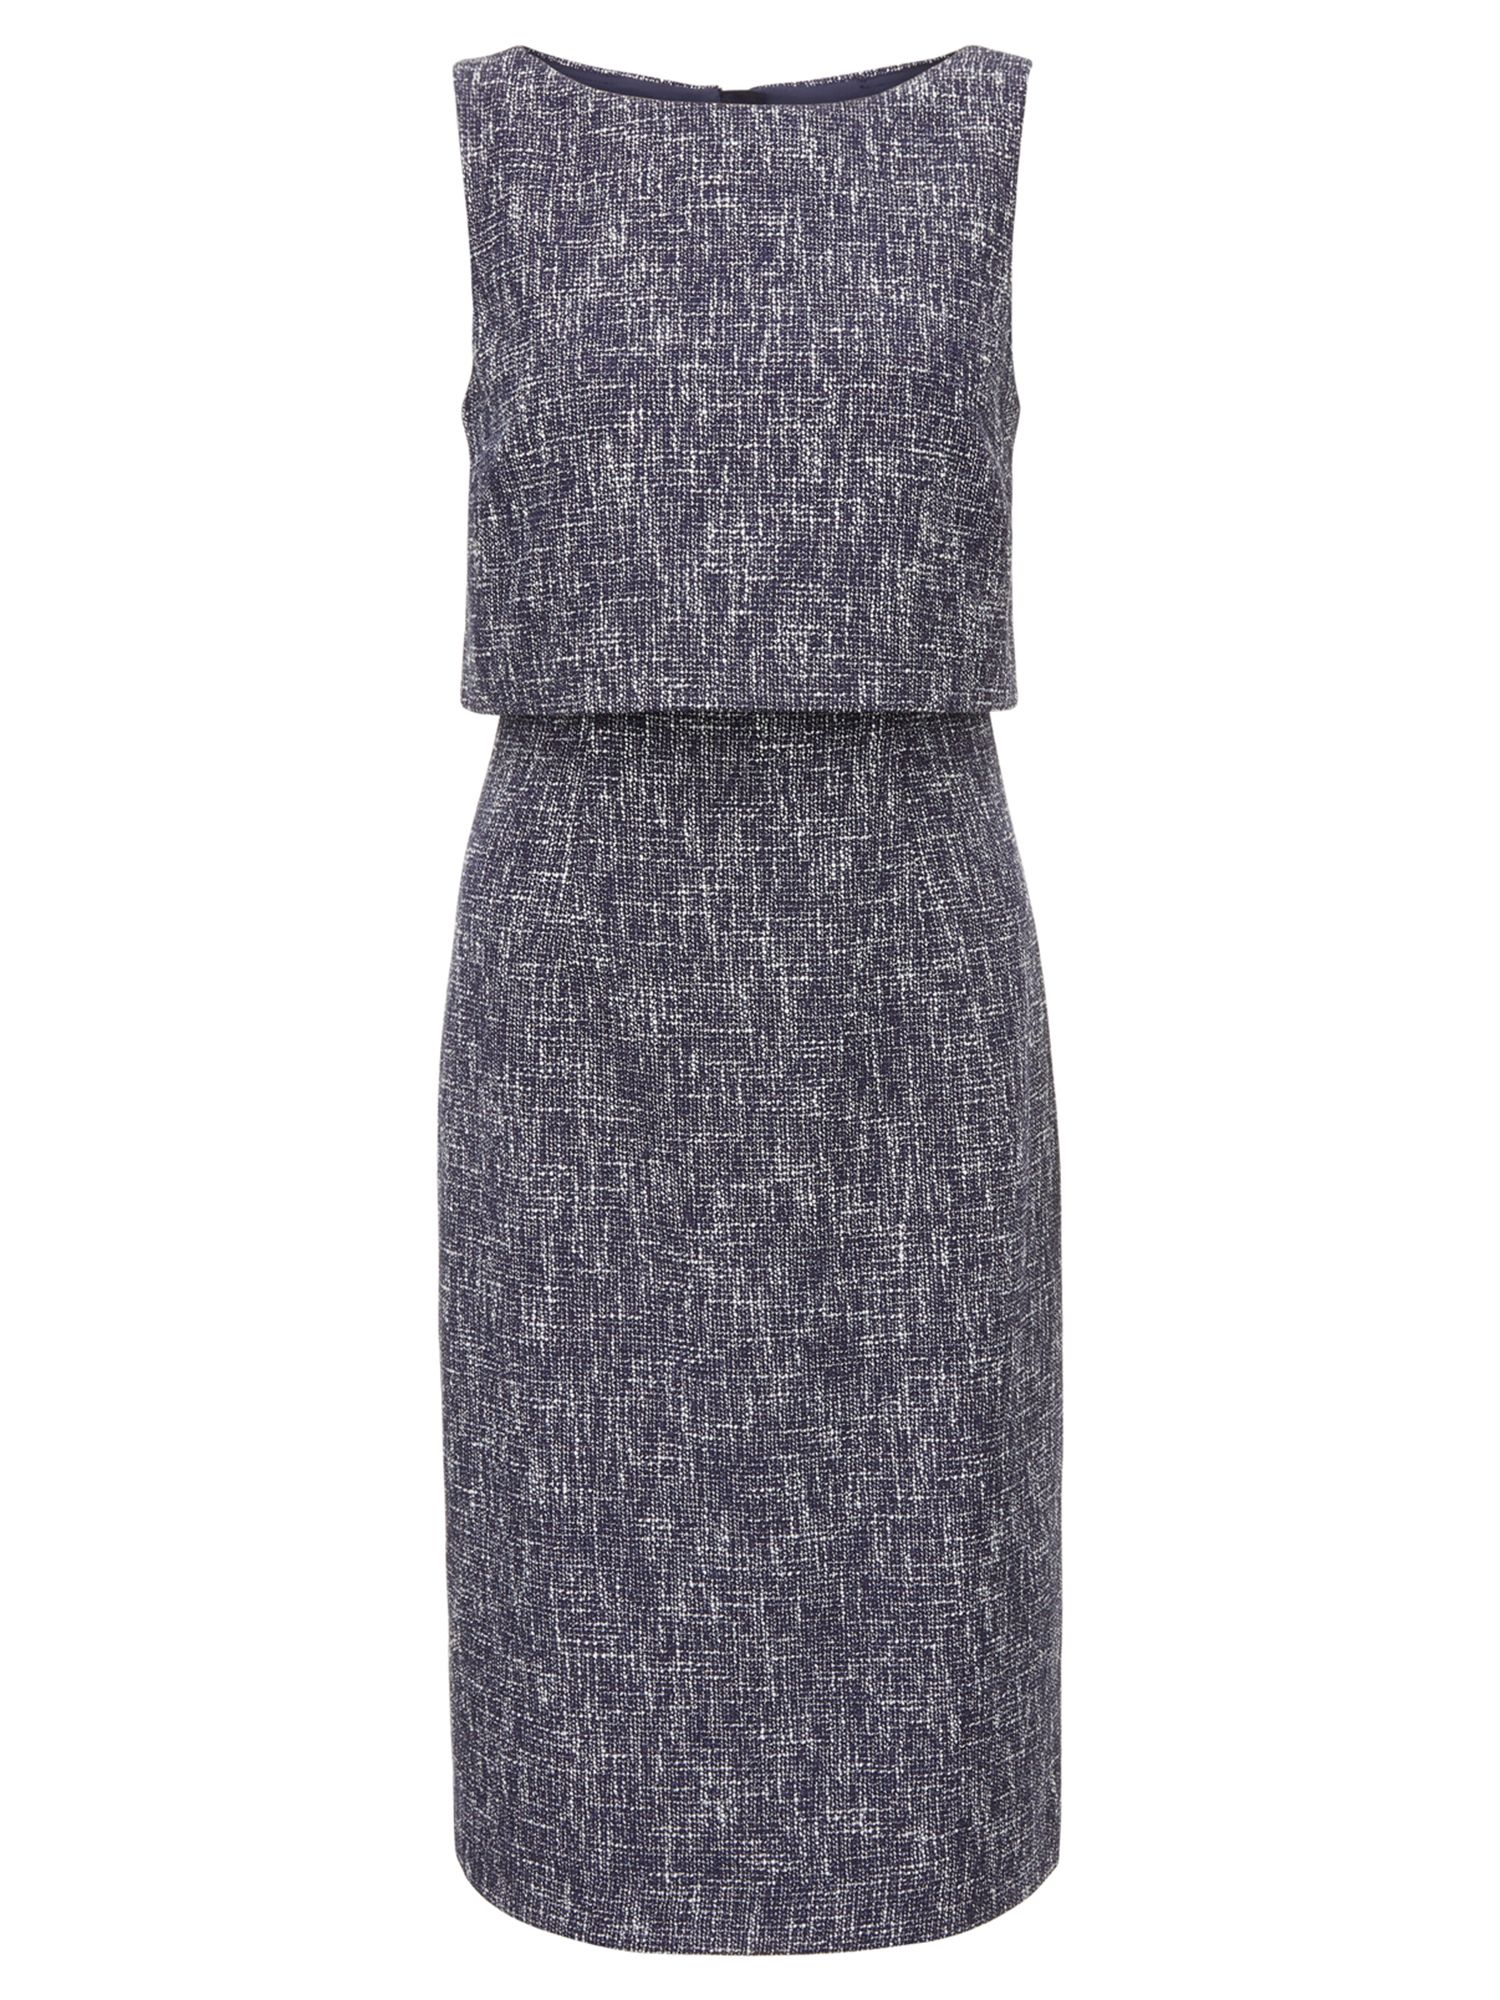 Hobbs Arabella Dress, Multi-Coloured